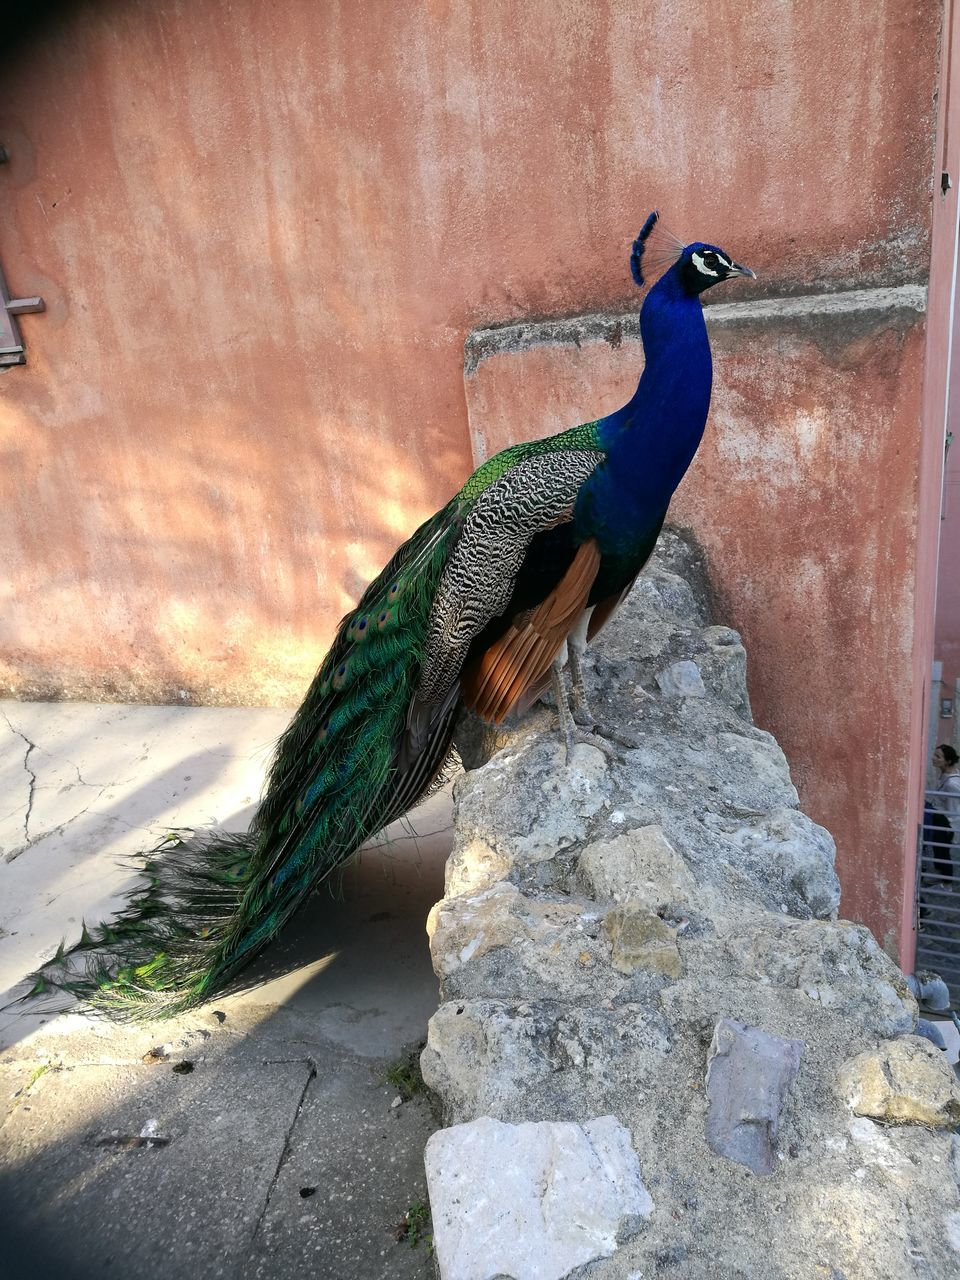 bird, one animal, animals in the wild, animal themes, animal wildlife, nature, day, no people, outdoors, peacock, beauty in nature, full length, close-up